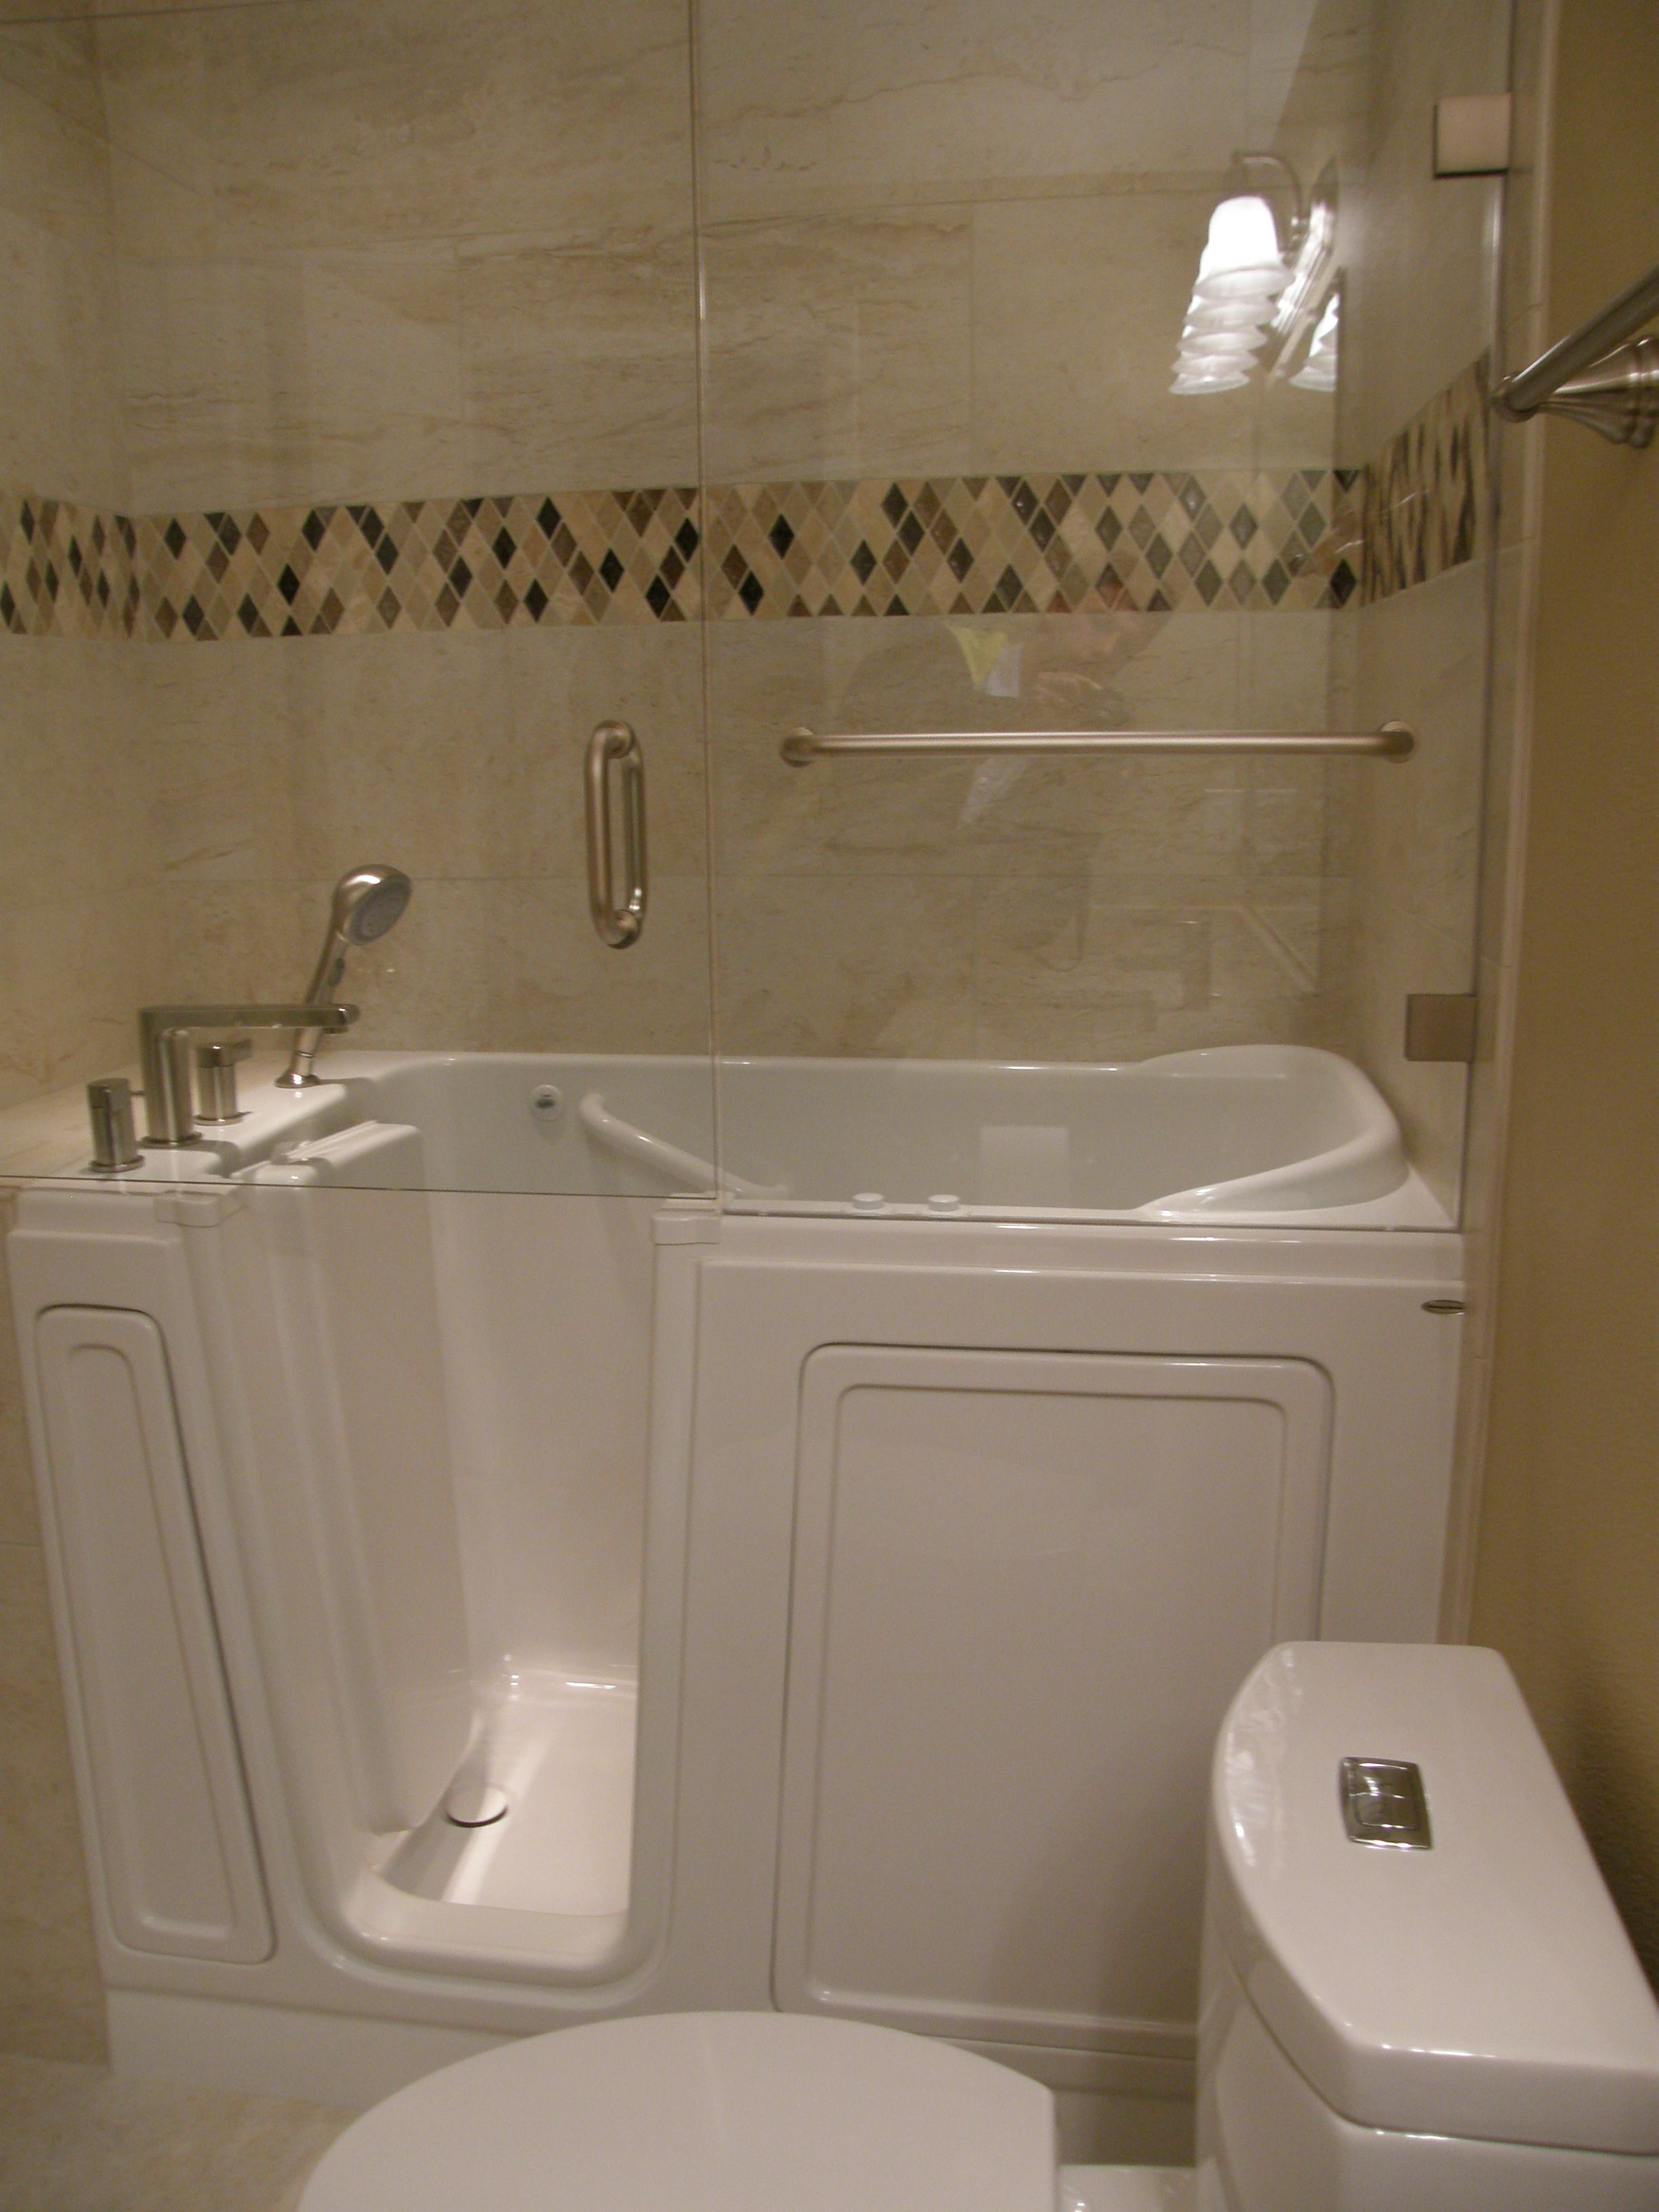 Ada Tub Shower With Images Jet Tub Shower Combo Bathroom Tub - Bathtub Shower Combo For Small Spaces